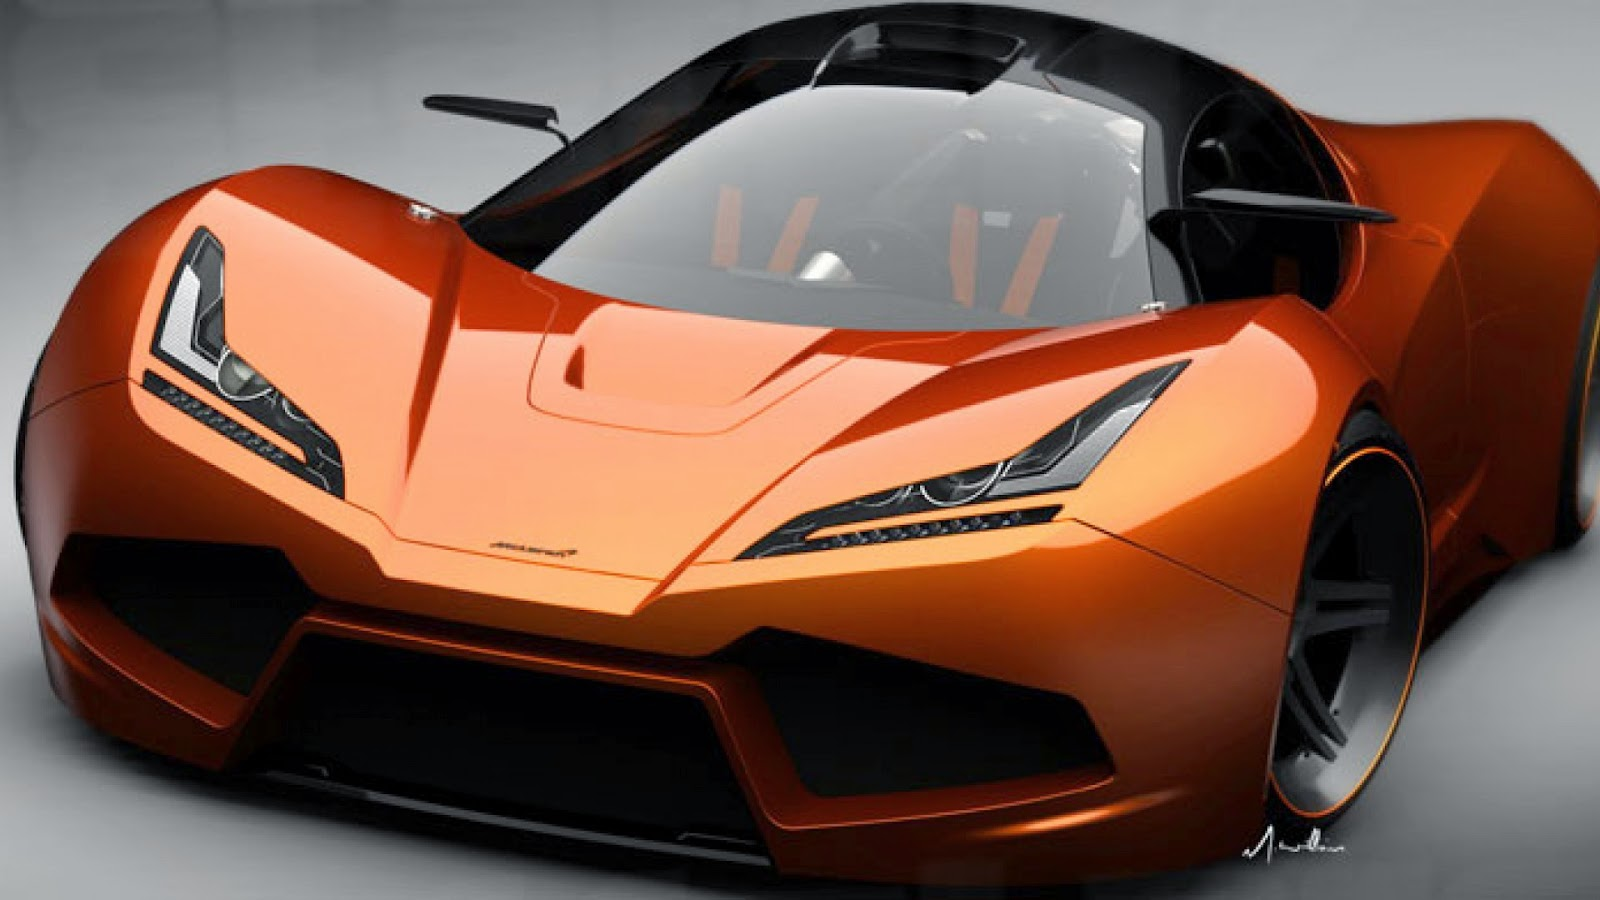 World Best Cars Wallpapers Free Download 2015 - Online Fun